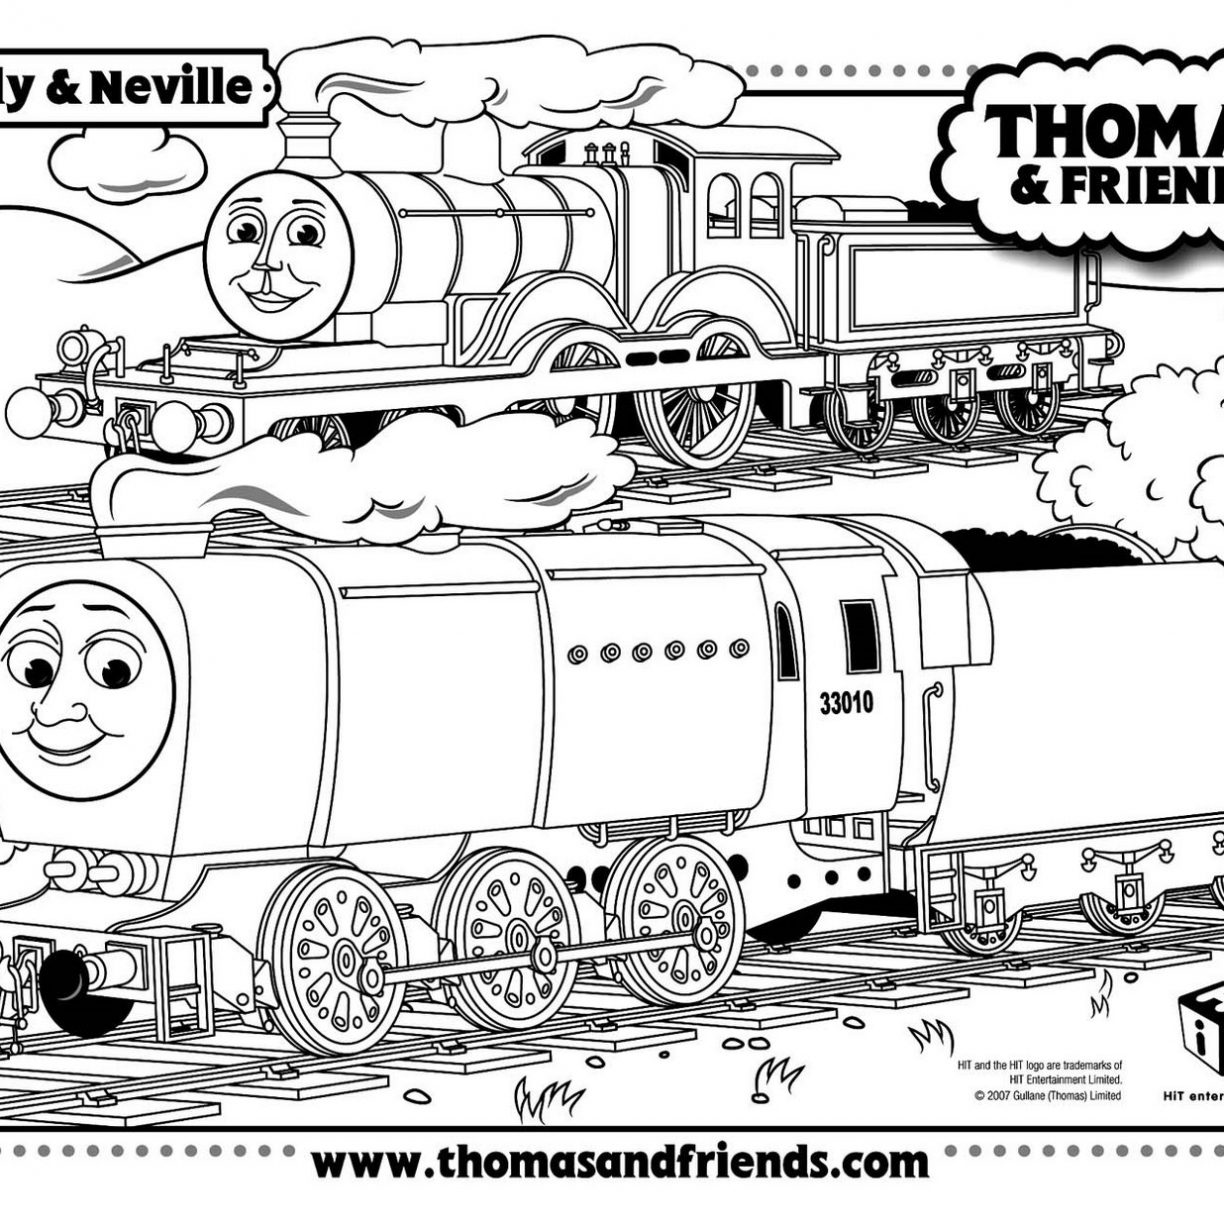 1224x1224 Gordon Thomas Friends Coloring Pages Hellokids And General Emily